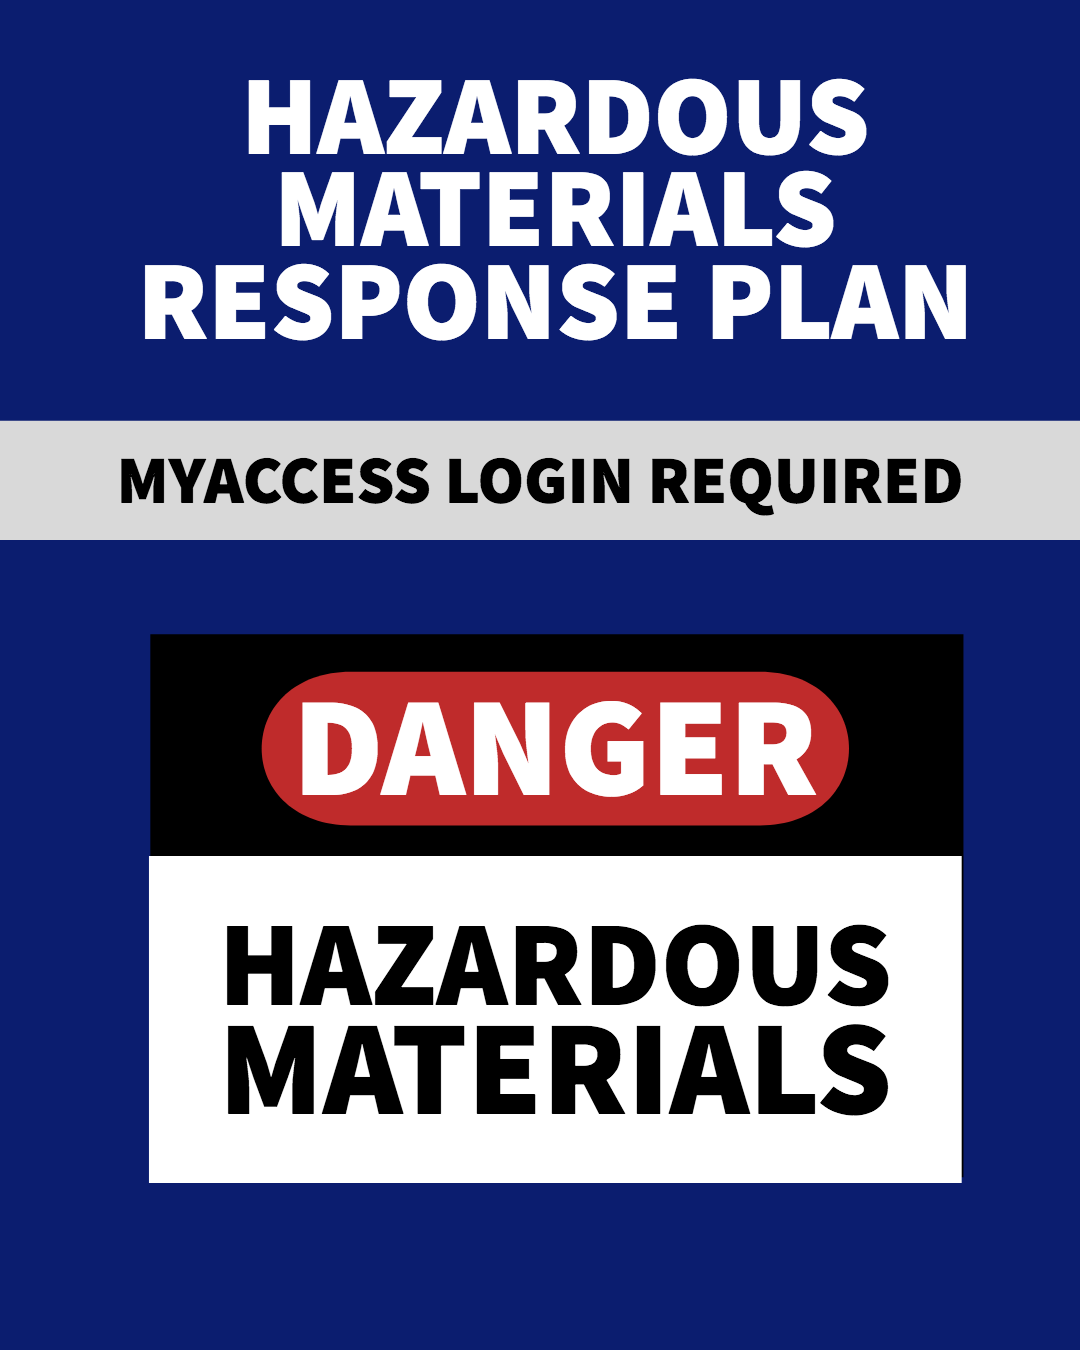 Hazardous Materials Response Plan